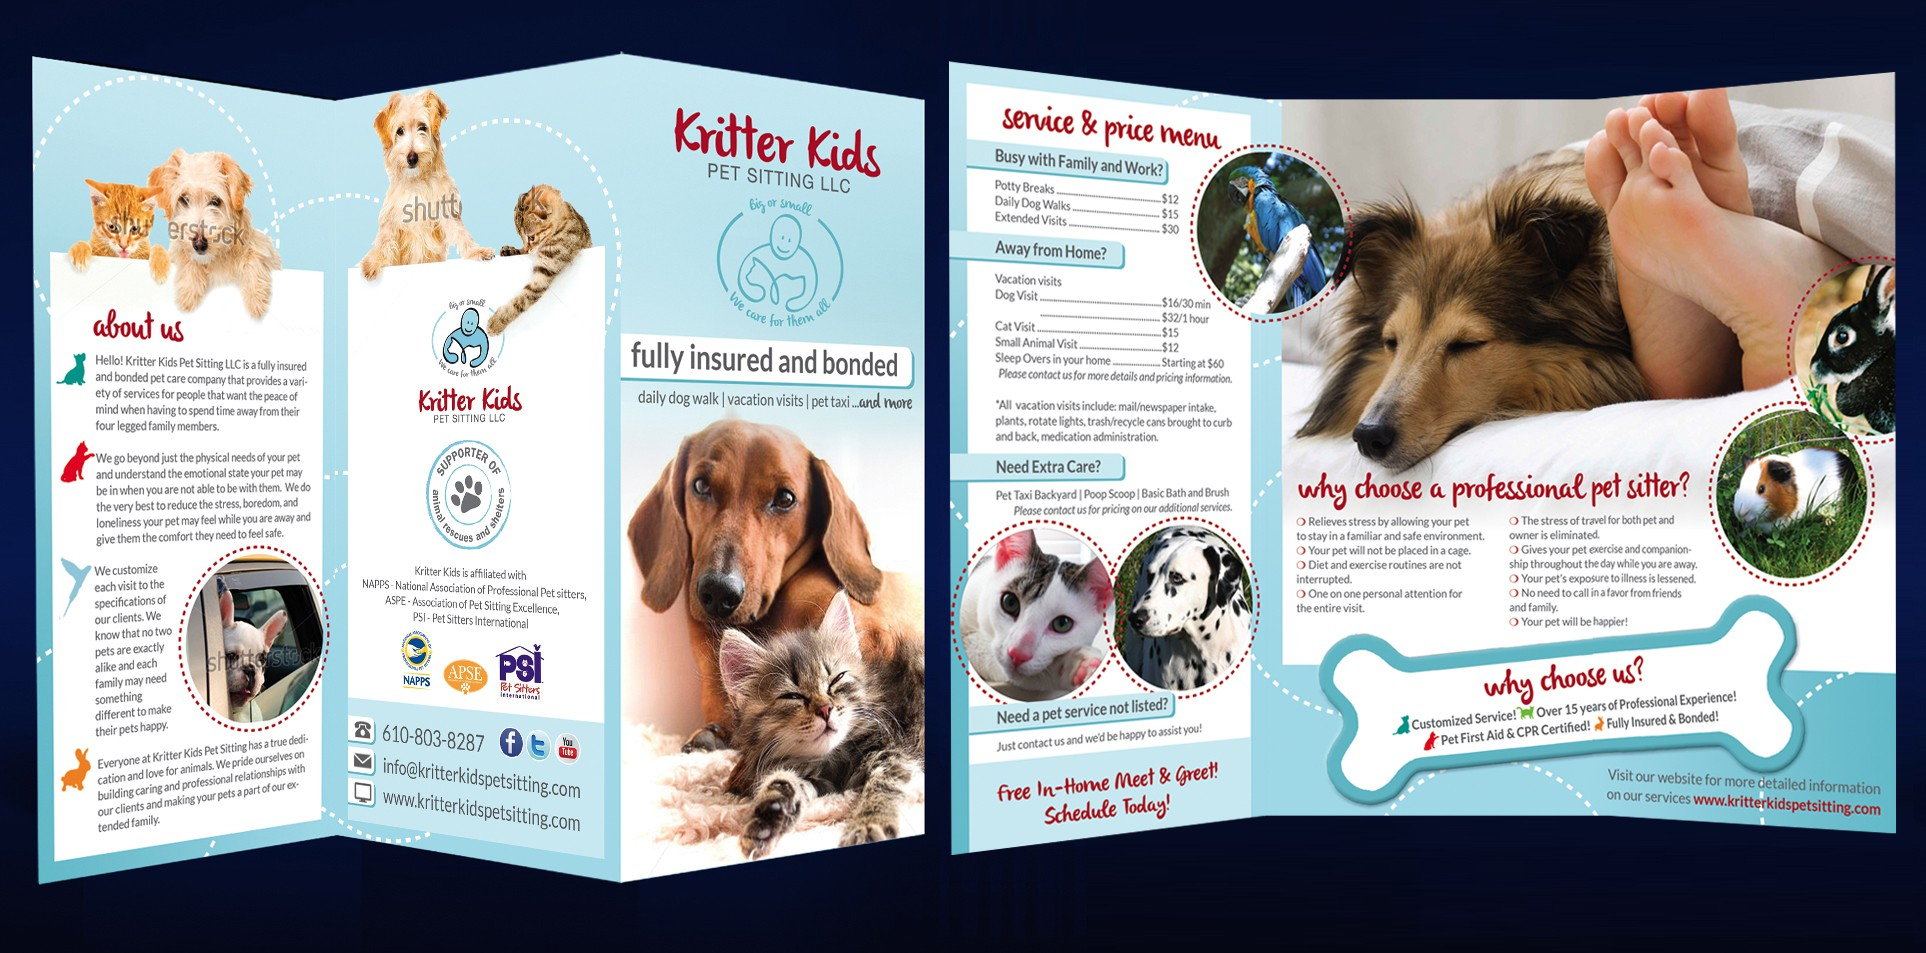 Who loves pets? Help Kritter Kids Pet Sitting blow the competion away with a brilliant brochure!